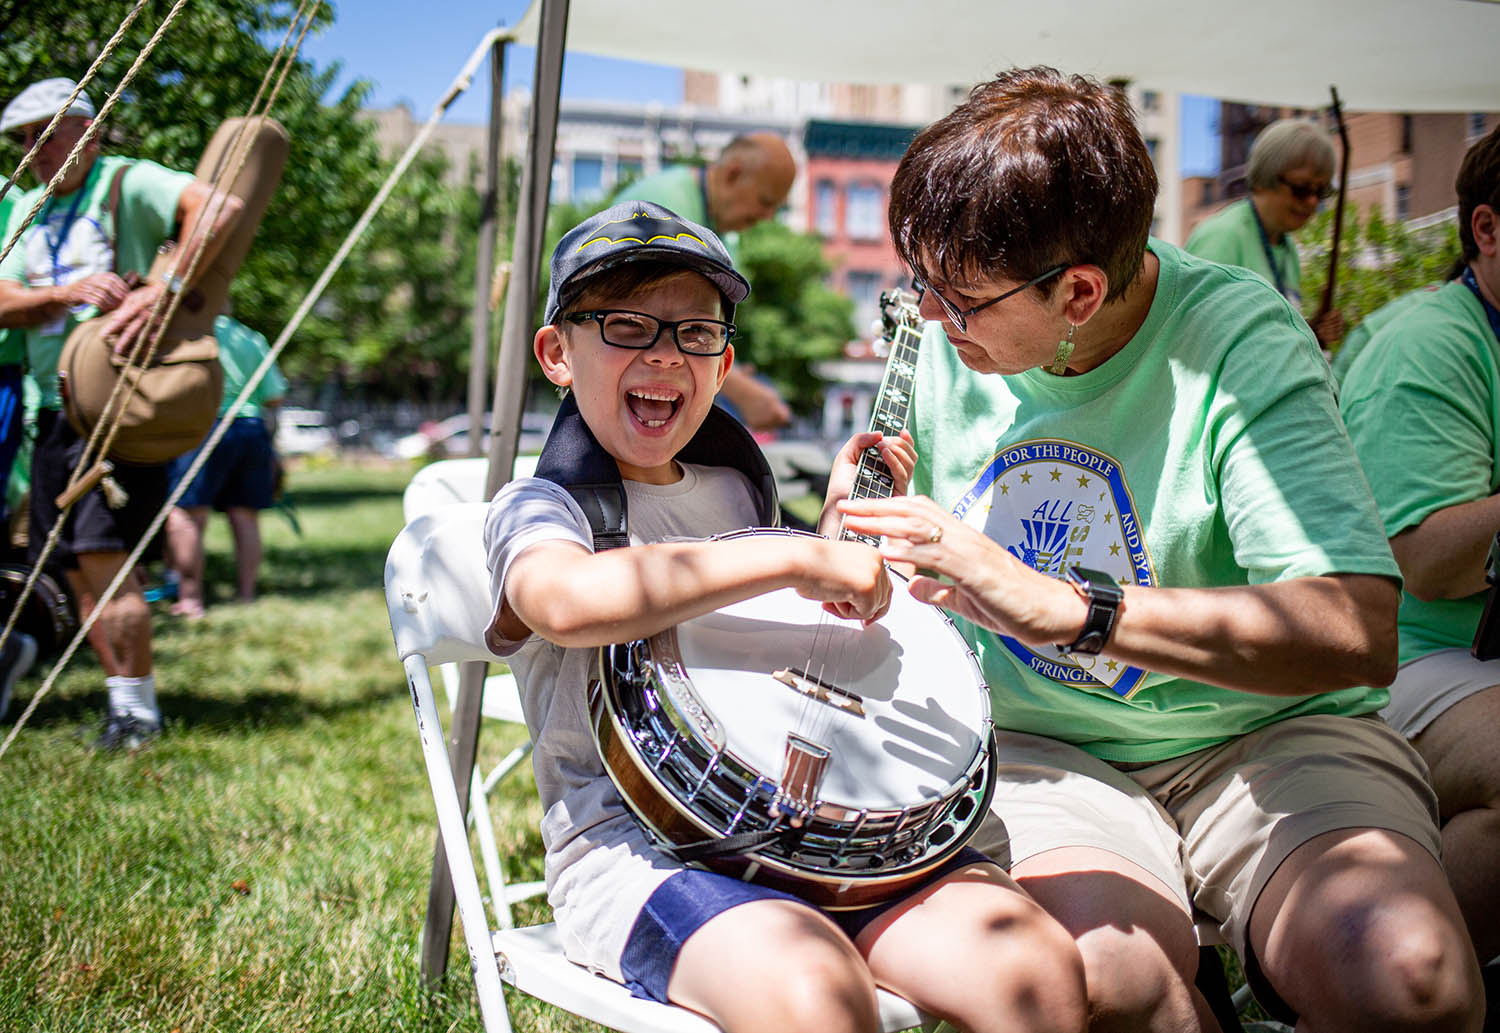 Henry Morton, 7, of Lakemoor, Ill., smiles as he hears and plays a note on a banjo for the first time as Nora Bardi, of Bloomington, Ill., shows him how to strum the strings before the the All Frets Flash Mob performs on the Old State Capitol, Friday, July 12, 2019, in Springfield, Ill. The All Frets Flash Mob are part of a group of banjo players that have congregated in Springfield for the All Frets Convention hosted by the Central Illinois Banjo Club at the Crowne Plaza. The convention, which is dedicated to music played on banjos, ukuleles, mandolins, guitars and other fretted instruments, concludes on Saturday with a concert at the Crowne Plaza starting at 7 p.m. [Justin L. Fowler/The State Journal-Register]